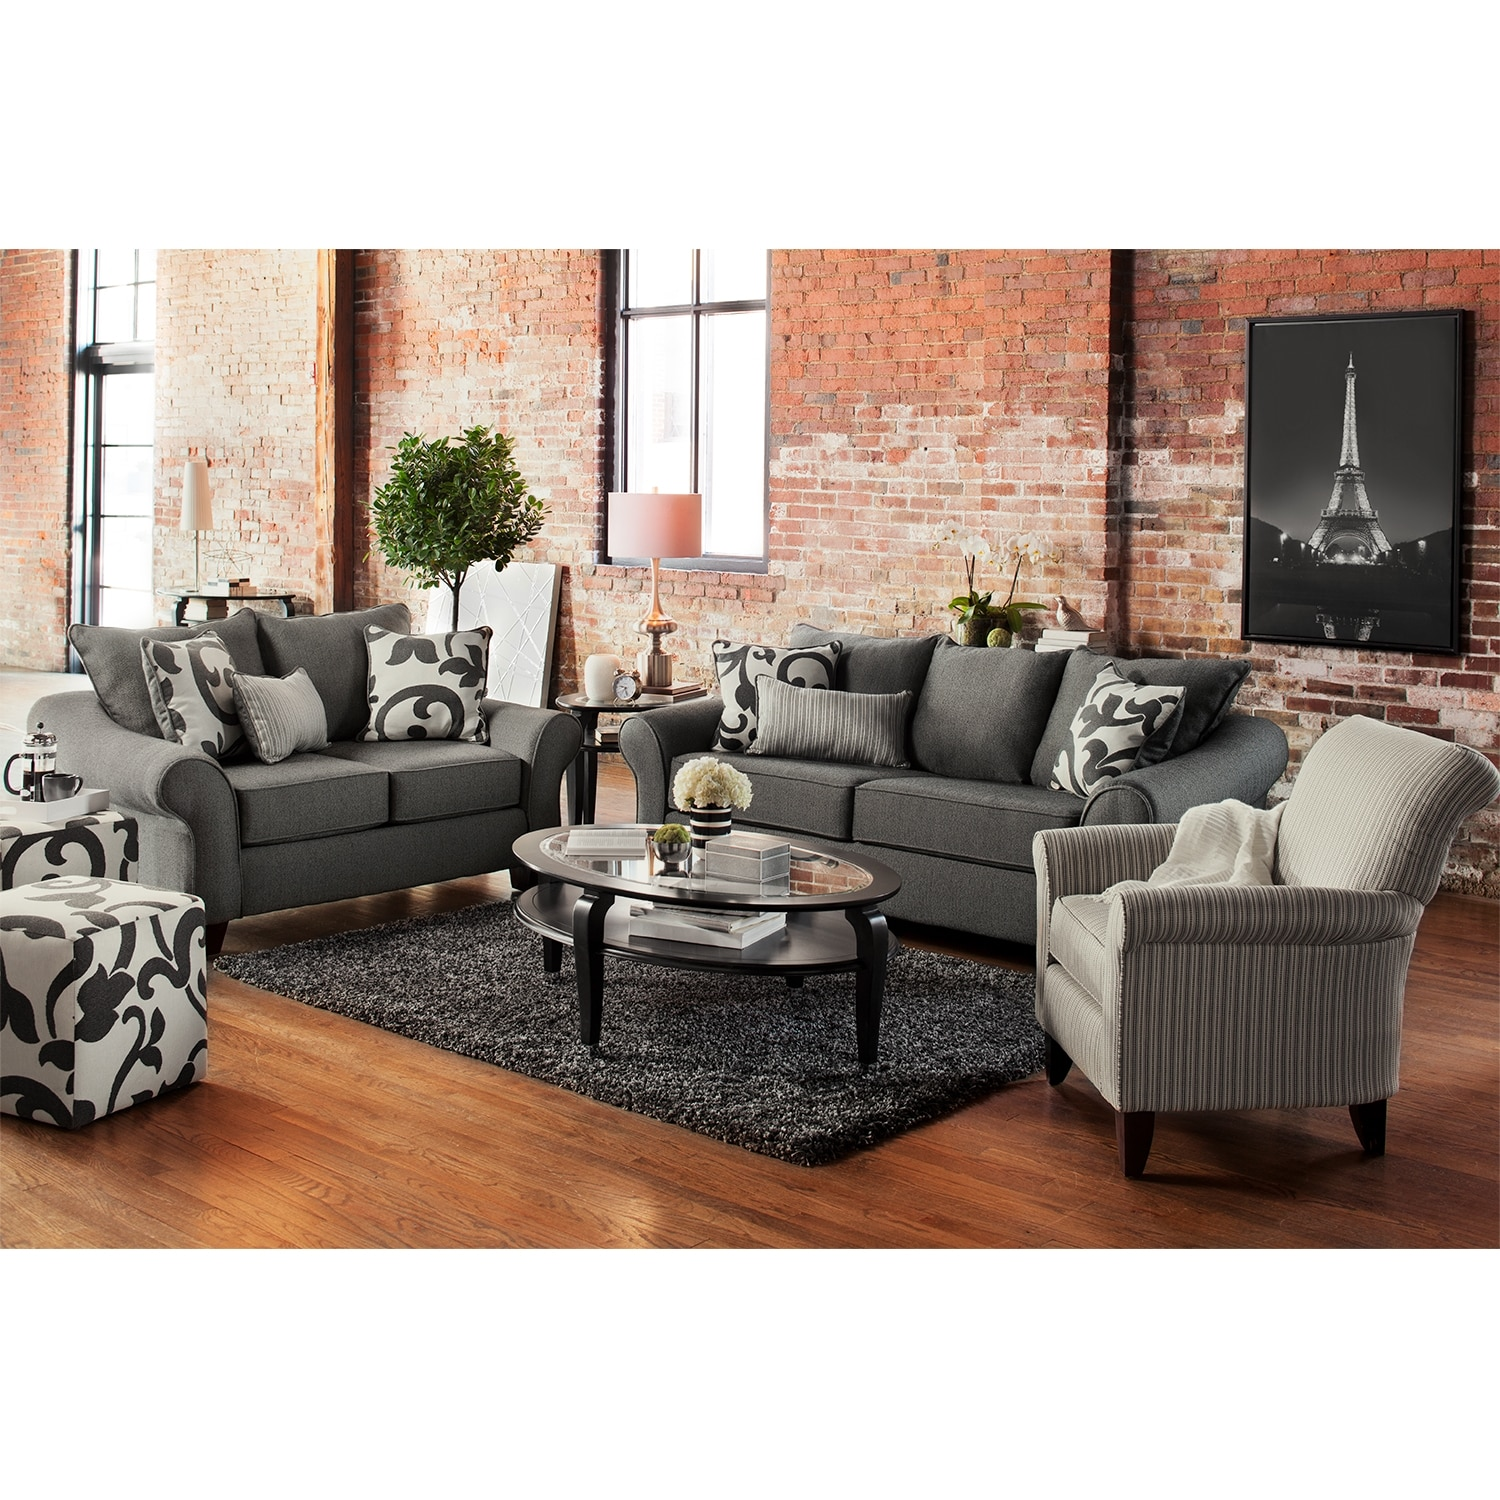 Grey Living Room Chairs Colette Sofa Loveseat And Accent Chair Set Gray